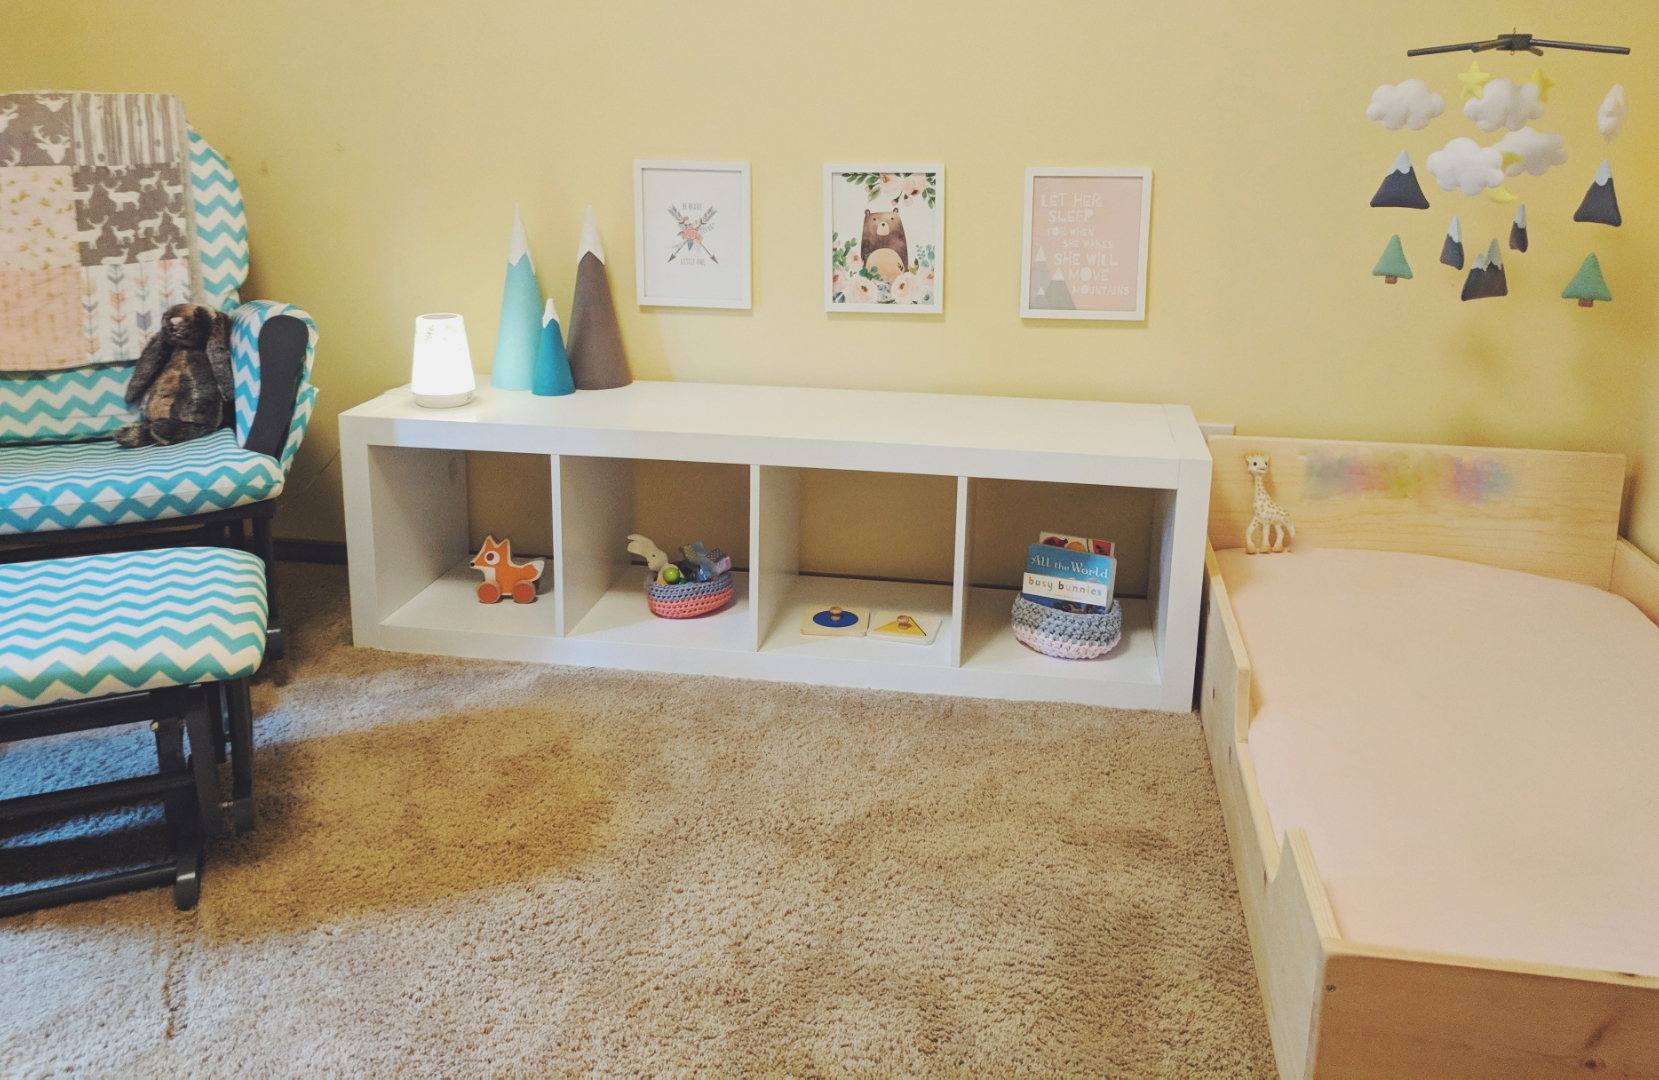 D's Bedroom at 9 Months